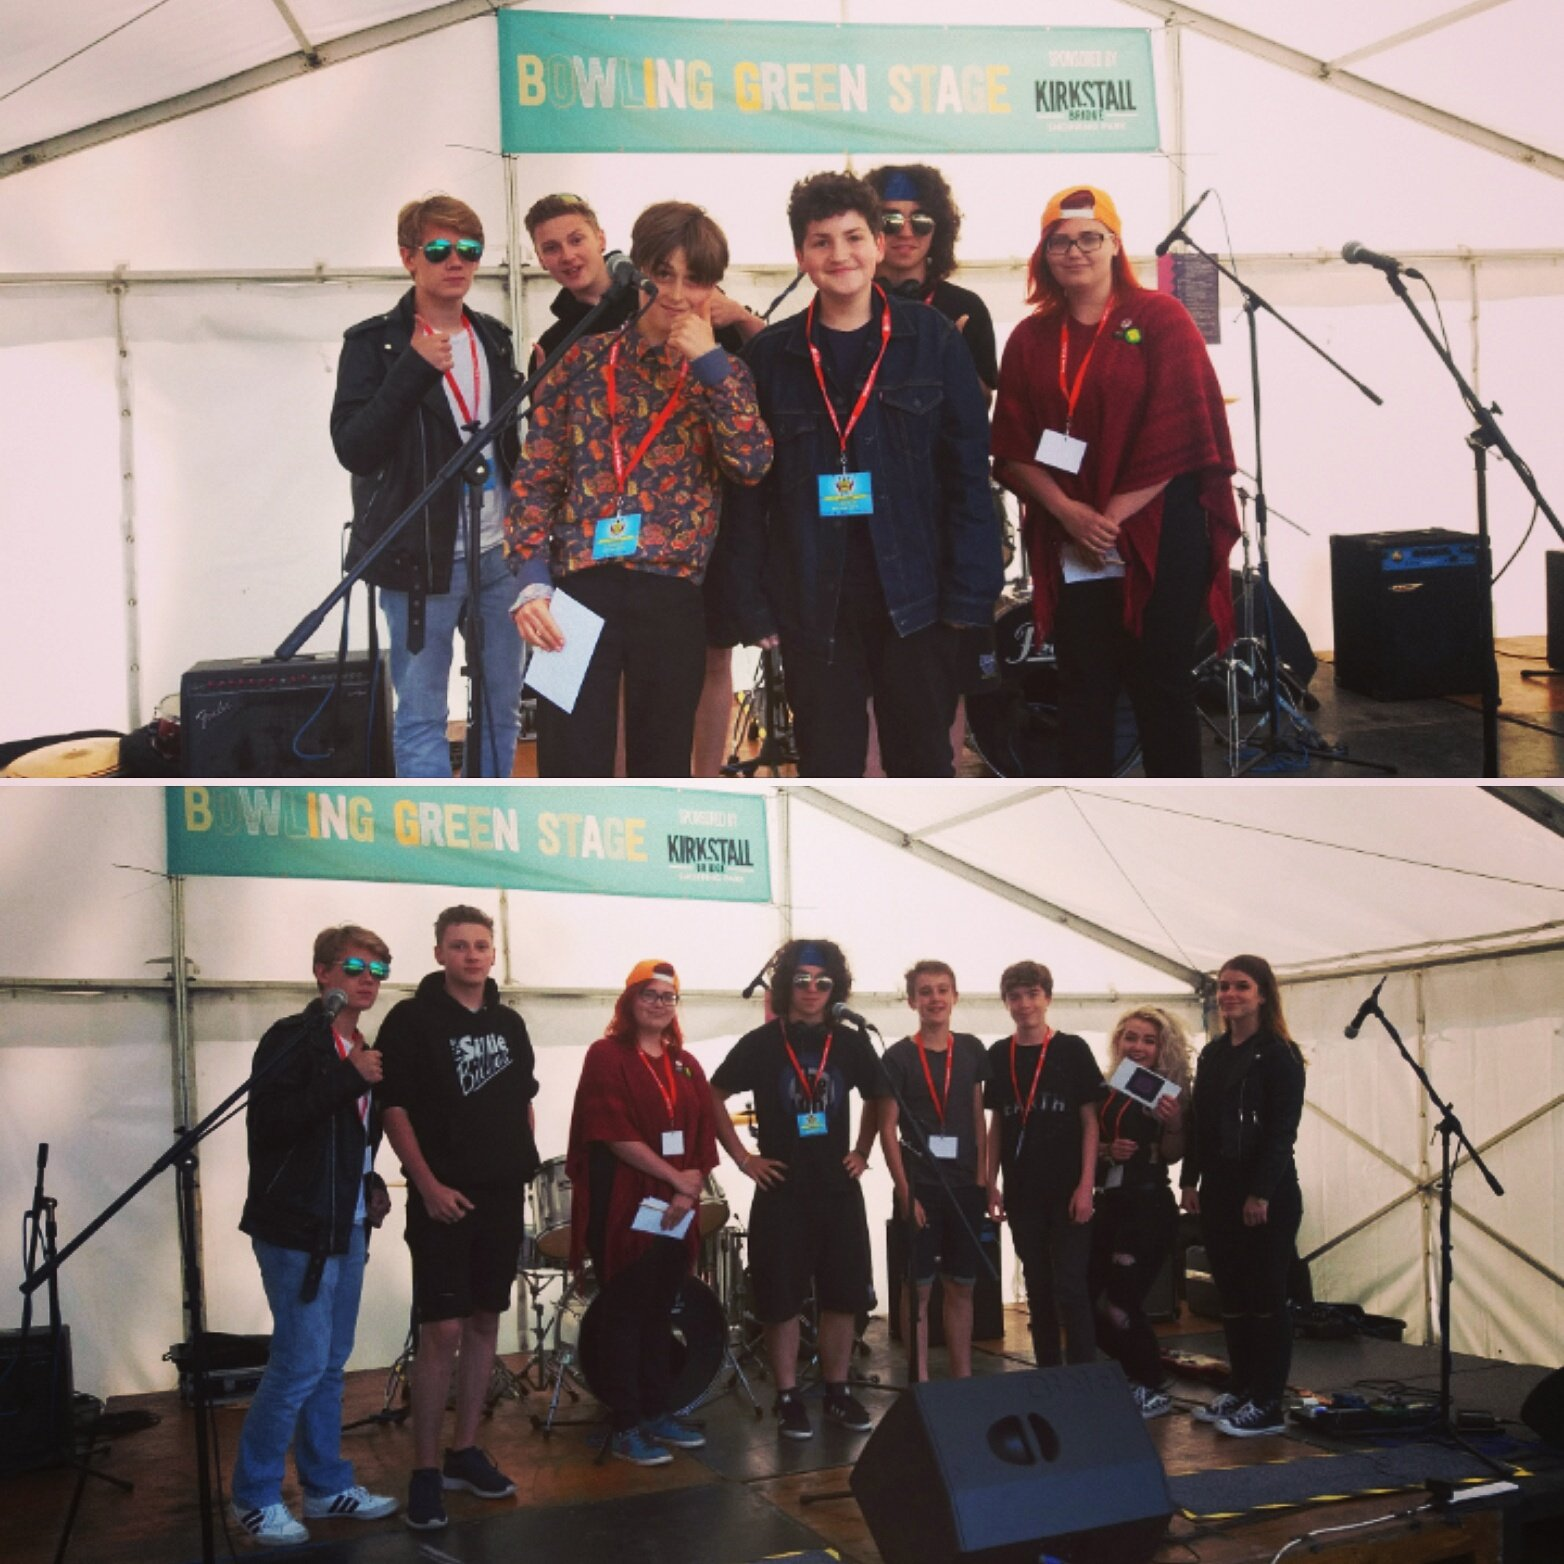 Amazing day as @LeedsMuseums took over the youth stage @KirkFest Winners  L'Objective @Neck of the woods. https://t.co/eskDPFfJnS